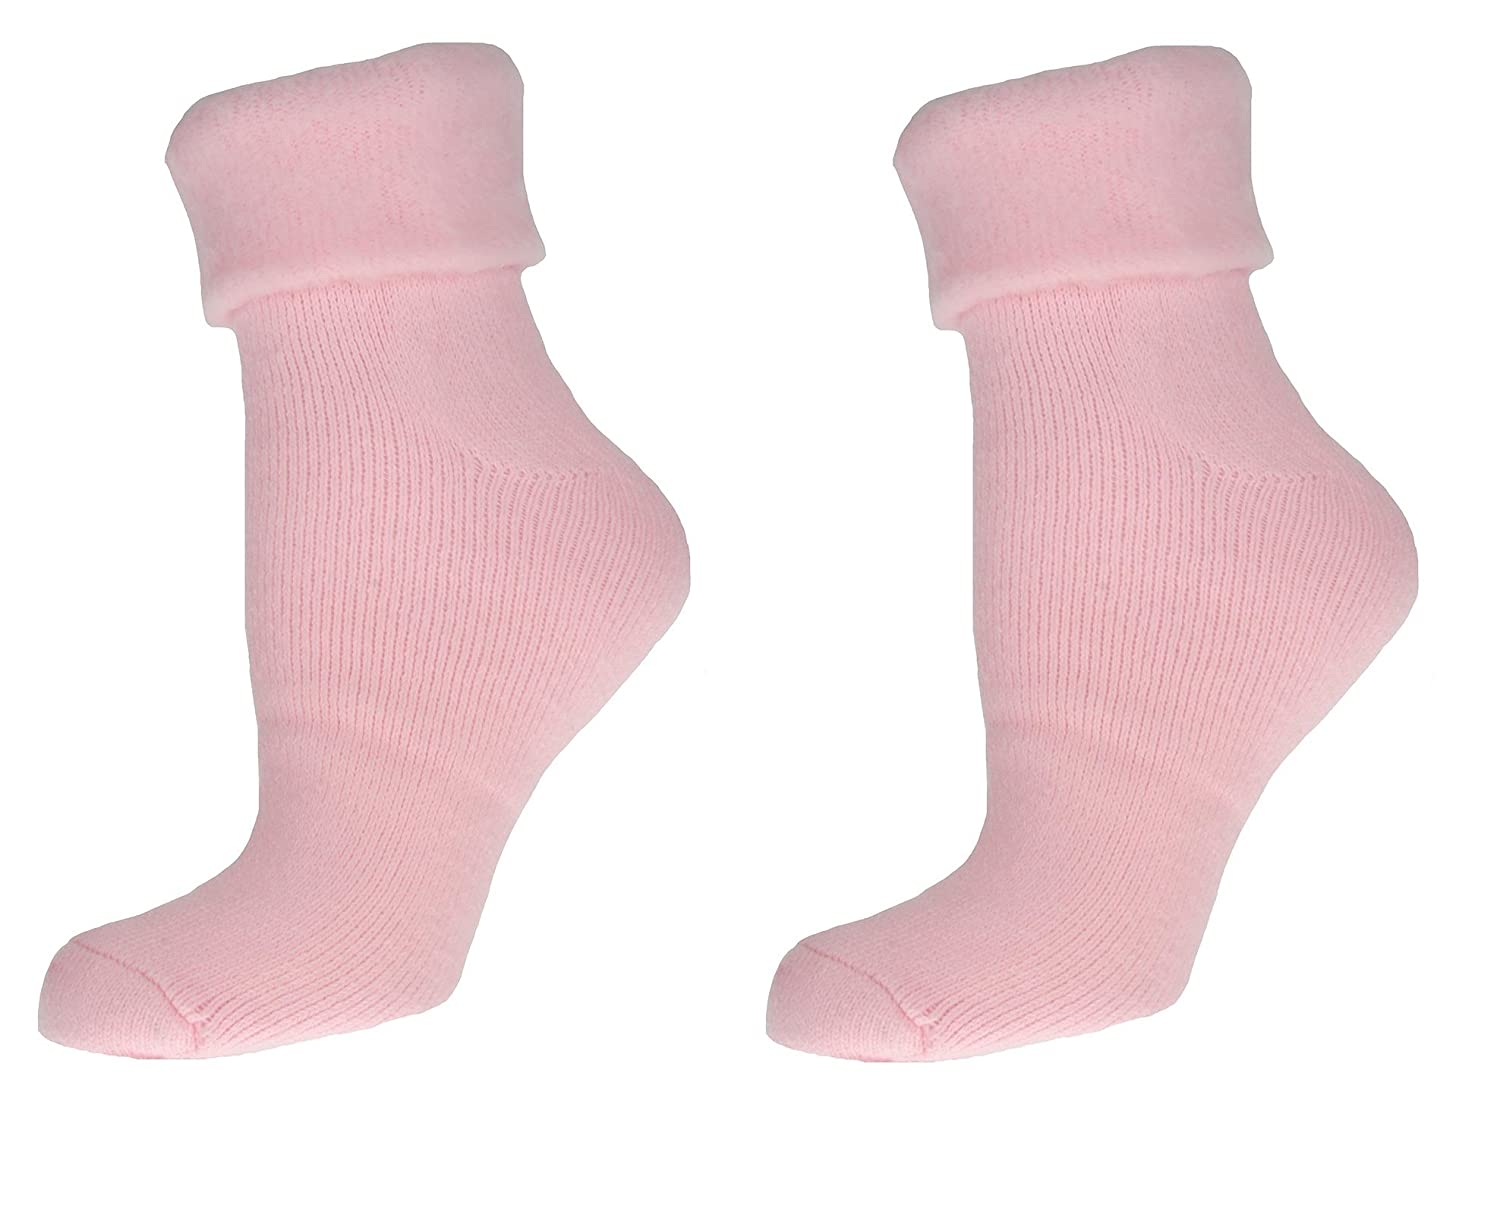 Sleeperzzz Ladies Soft Thermal Bed Socks - Pack of 2